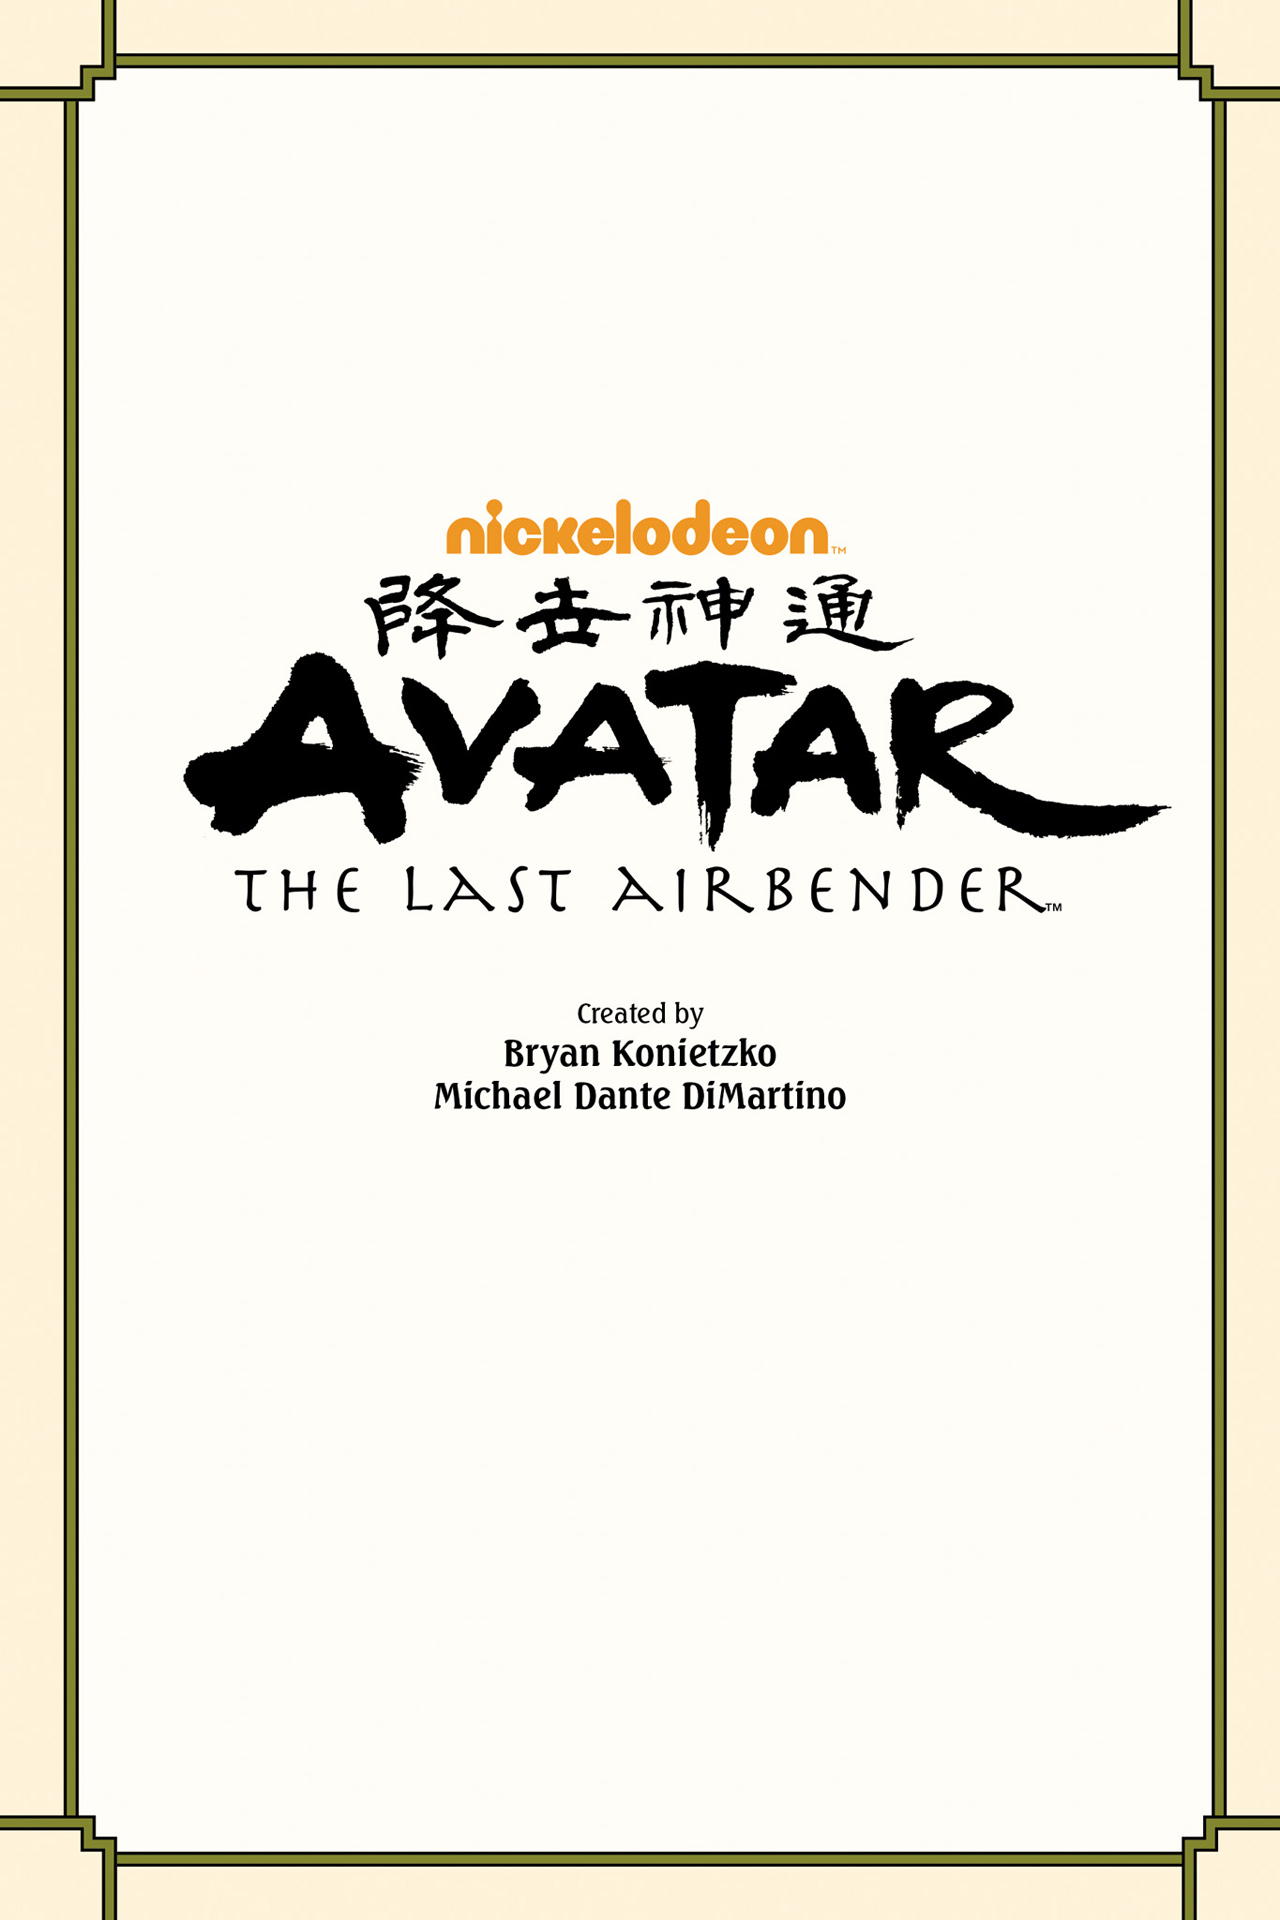 Read online Nickelodeon Avatar: The Last Airbender - The Search comic -  Issue # Part 3 - 2